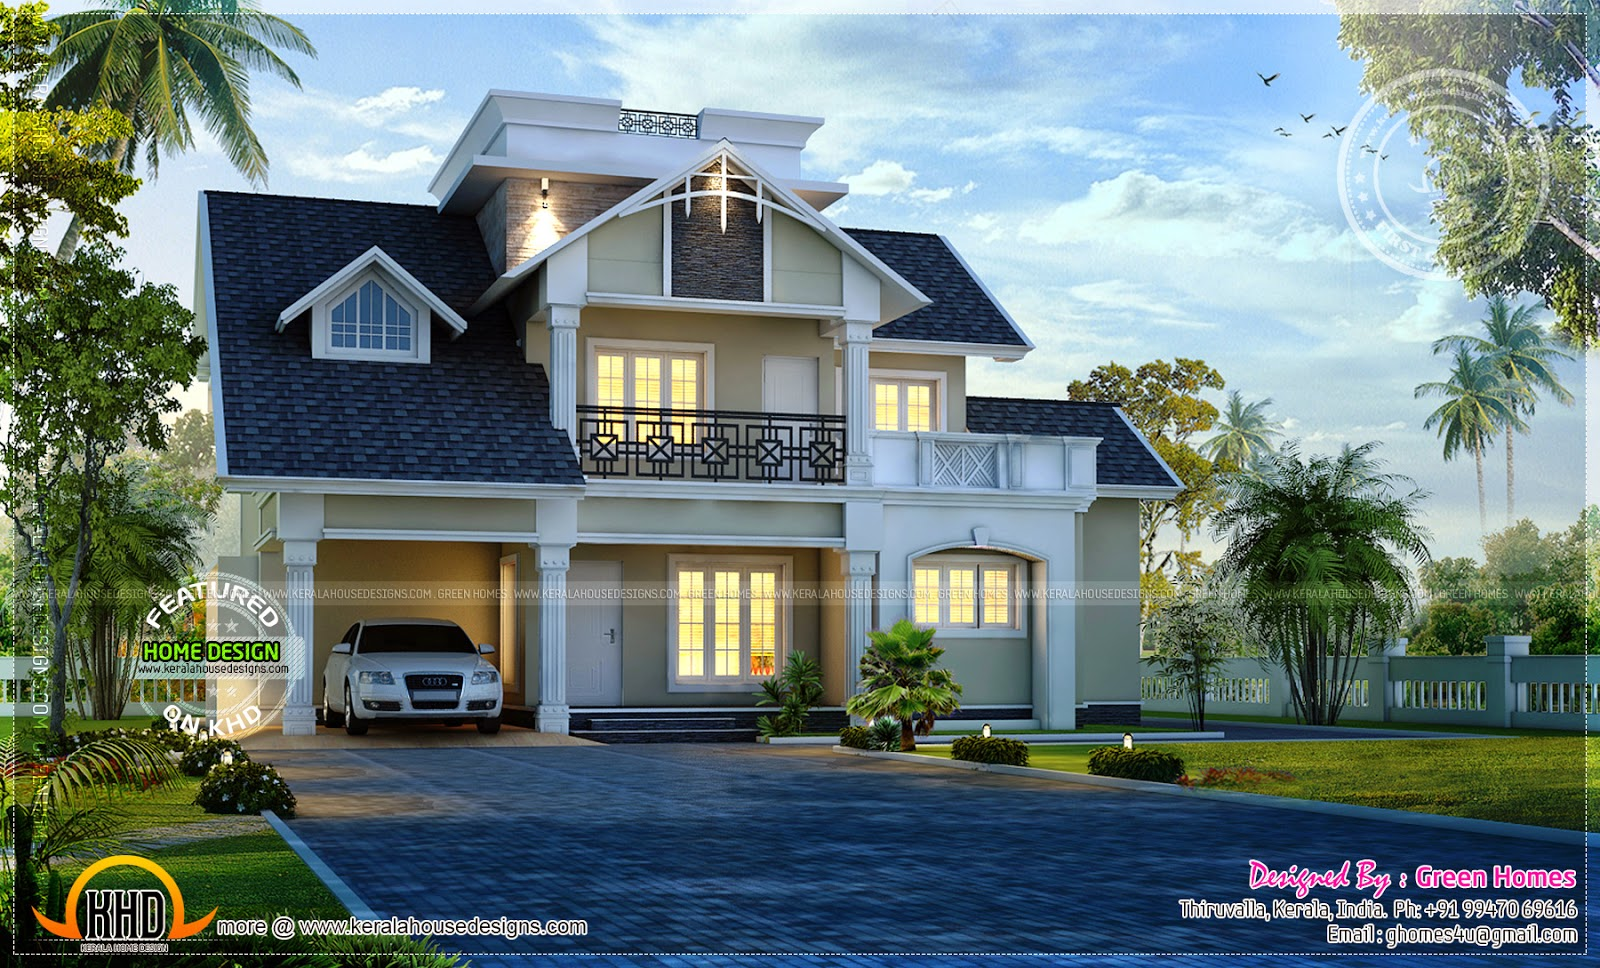 Awesome modern house exterior kerala home design and for Exterior house design for small spaces